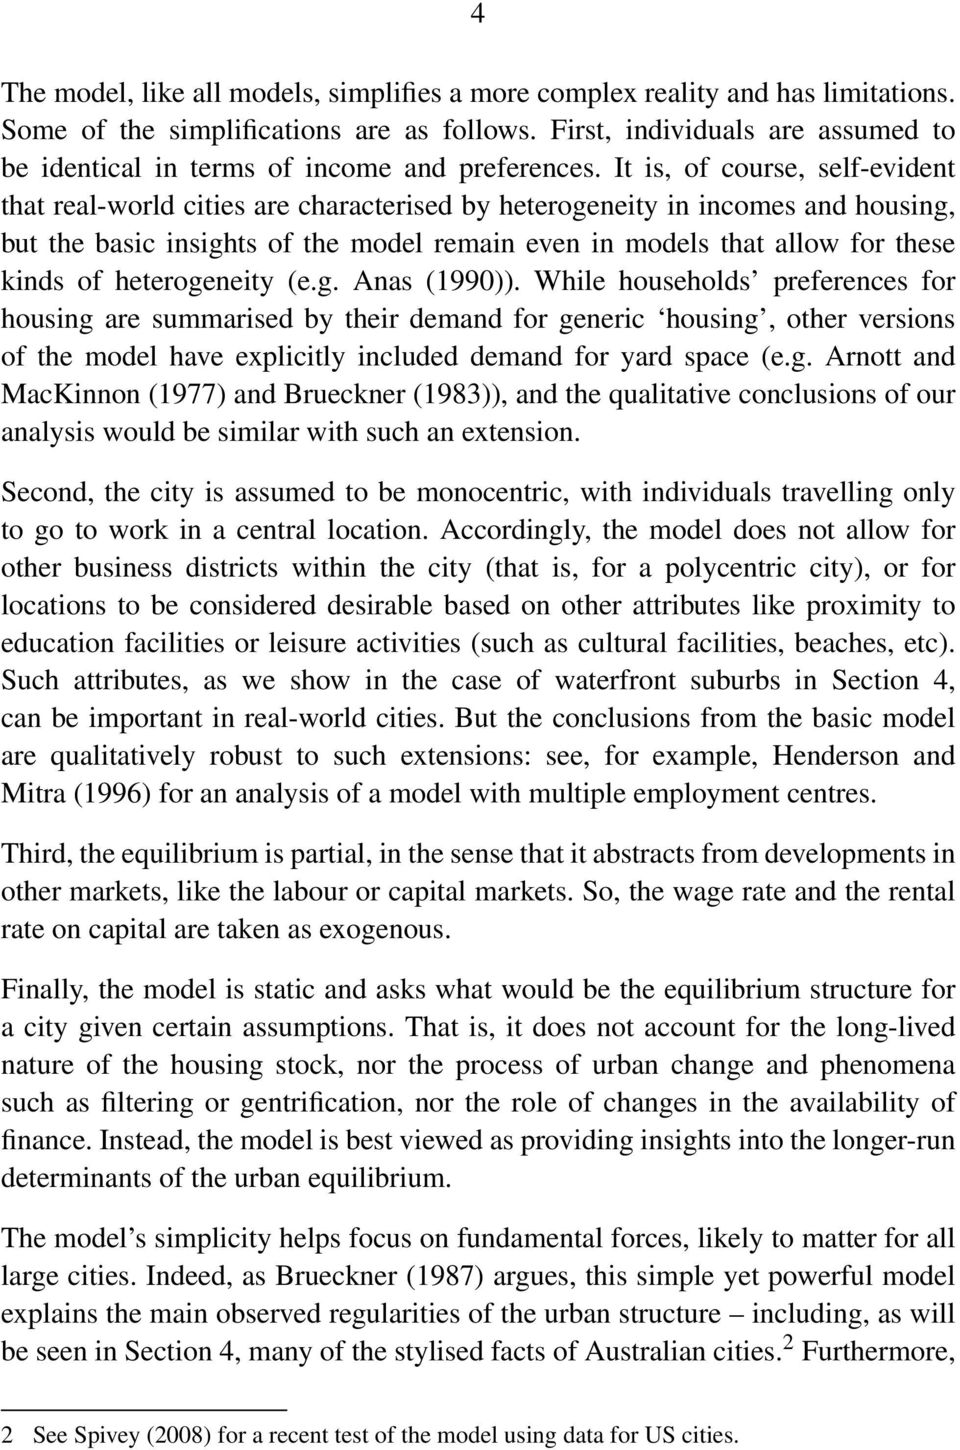 It is, of course, self-evident that real-world cities are characterised by heterogeneity in incomes and housing, but the basic insights of the model remain even in models that allow for these kinds